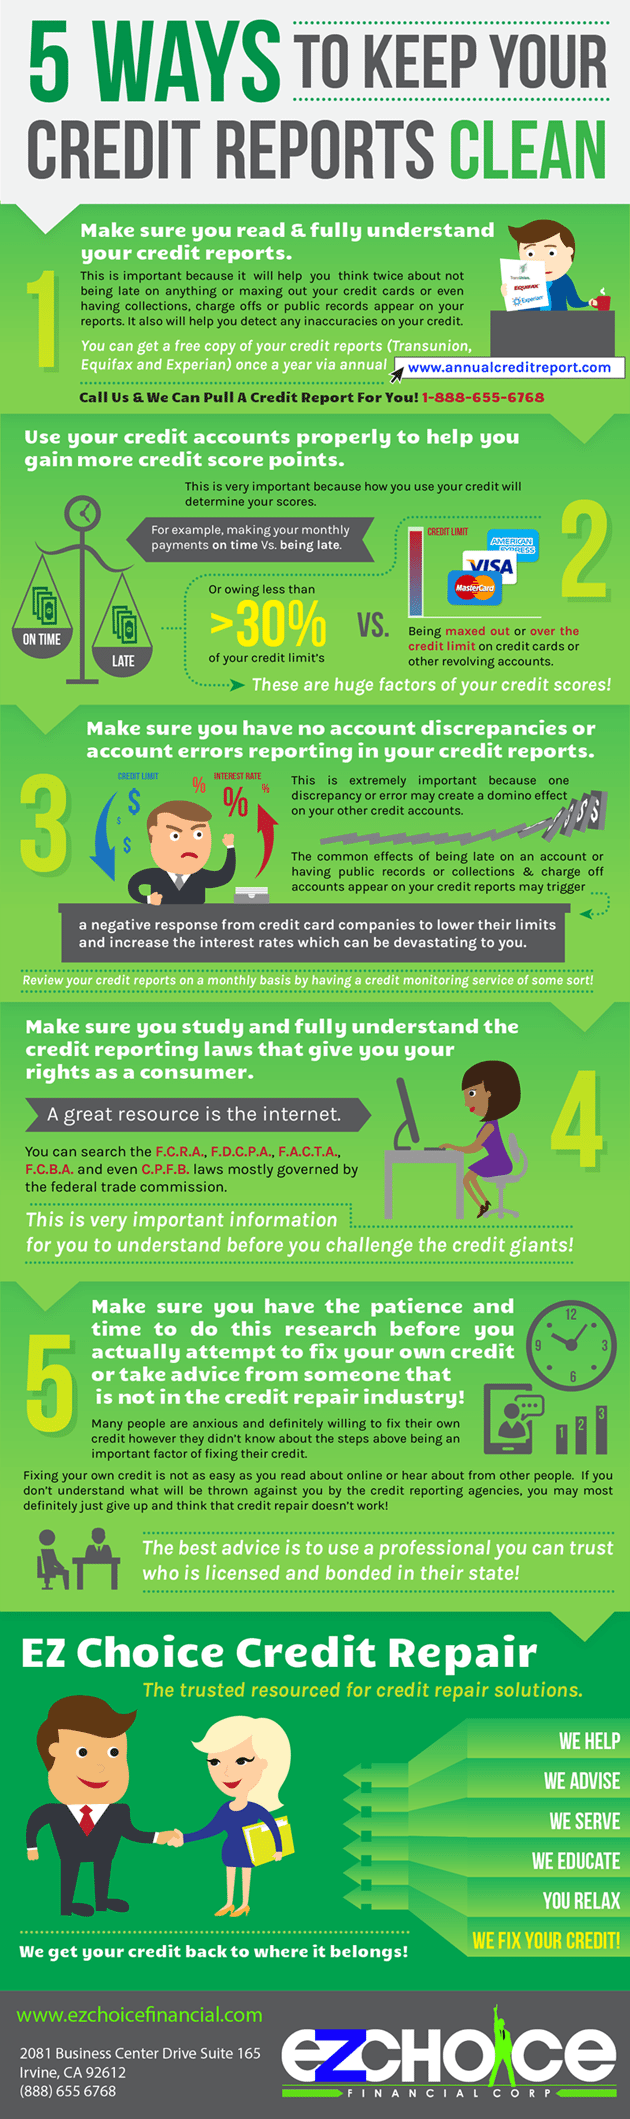 5 ways to keep your credit reports clean ez choice credit repair infographic